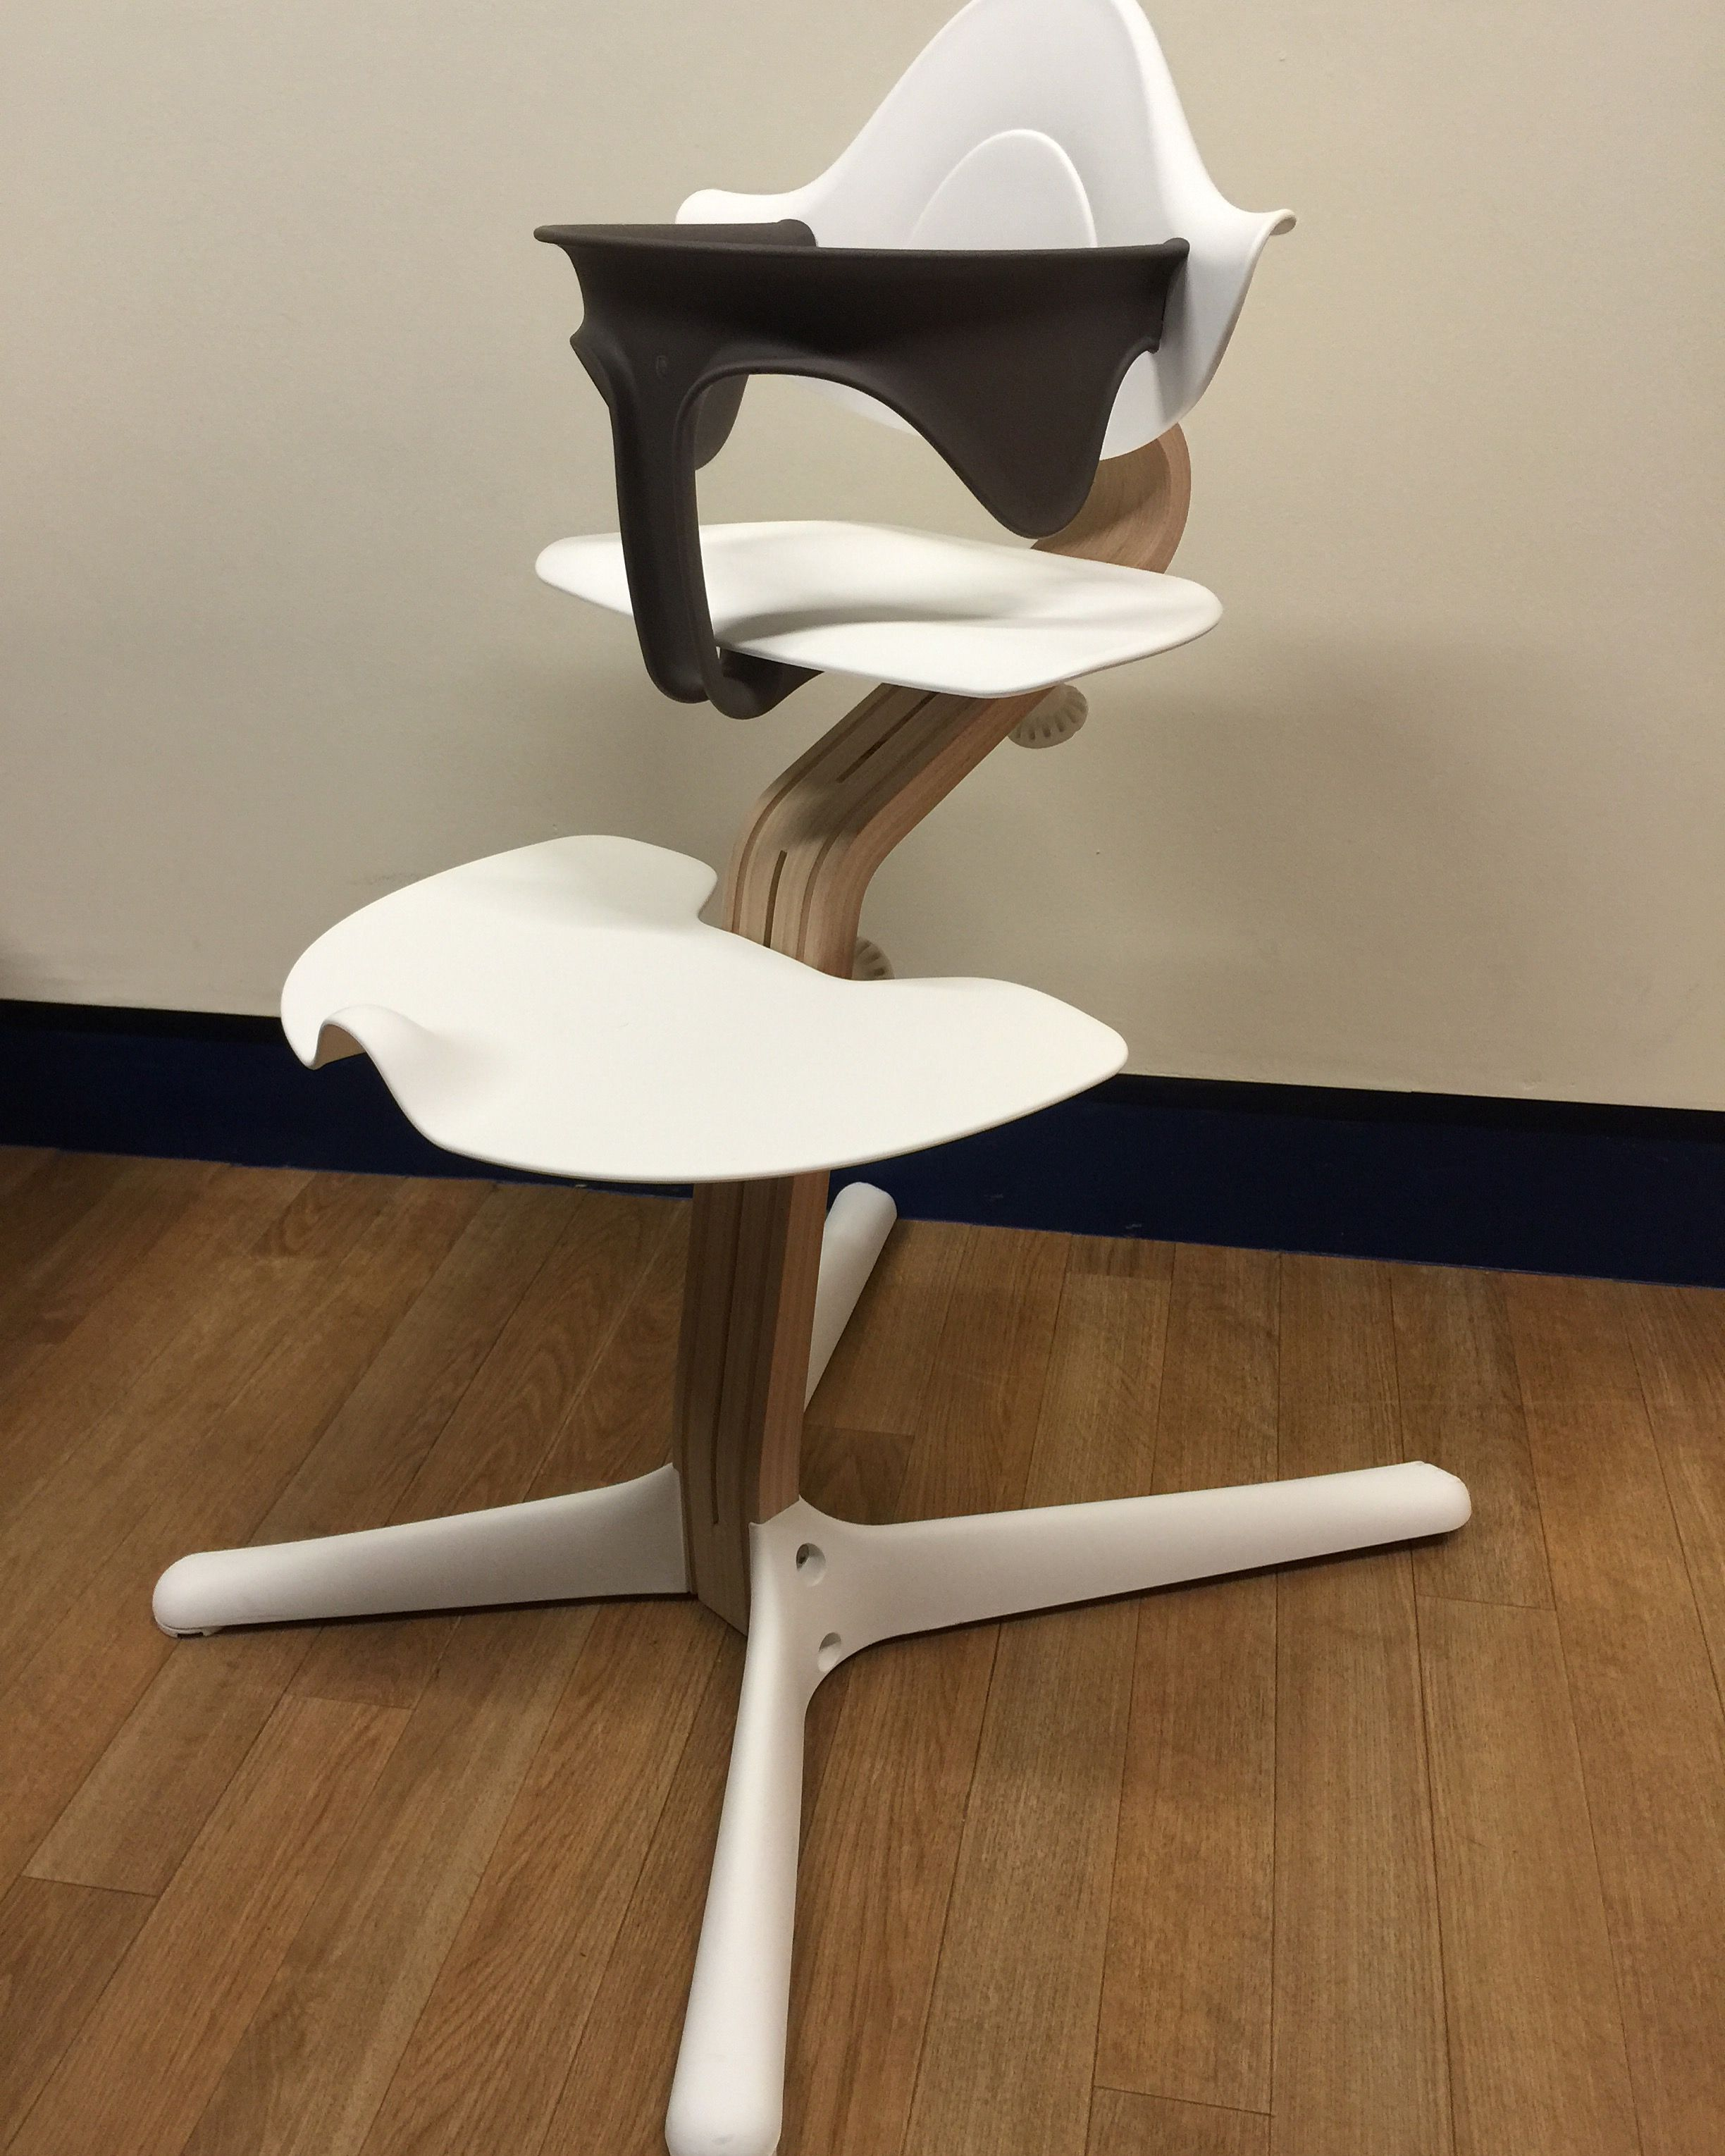 Designer High Chair Love The Look Of This Nomi High Chair By Evomove And Found Out